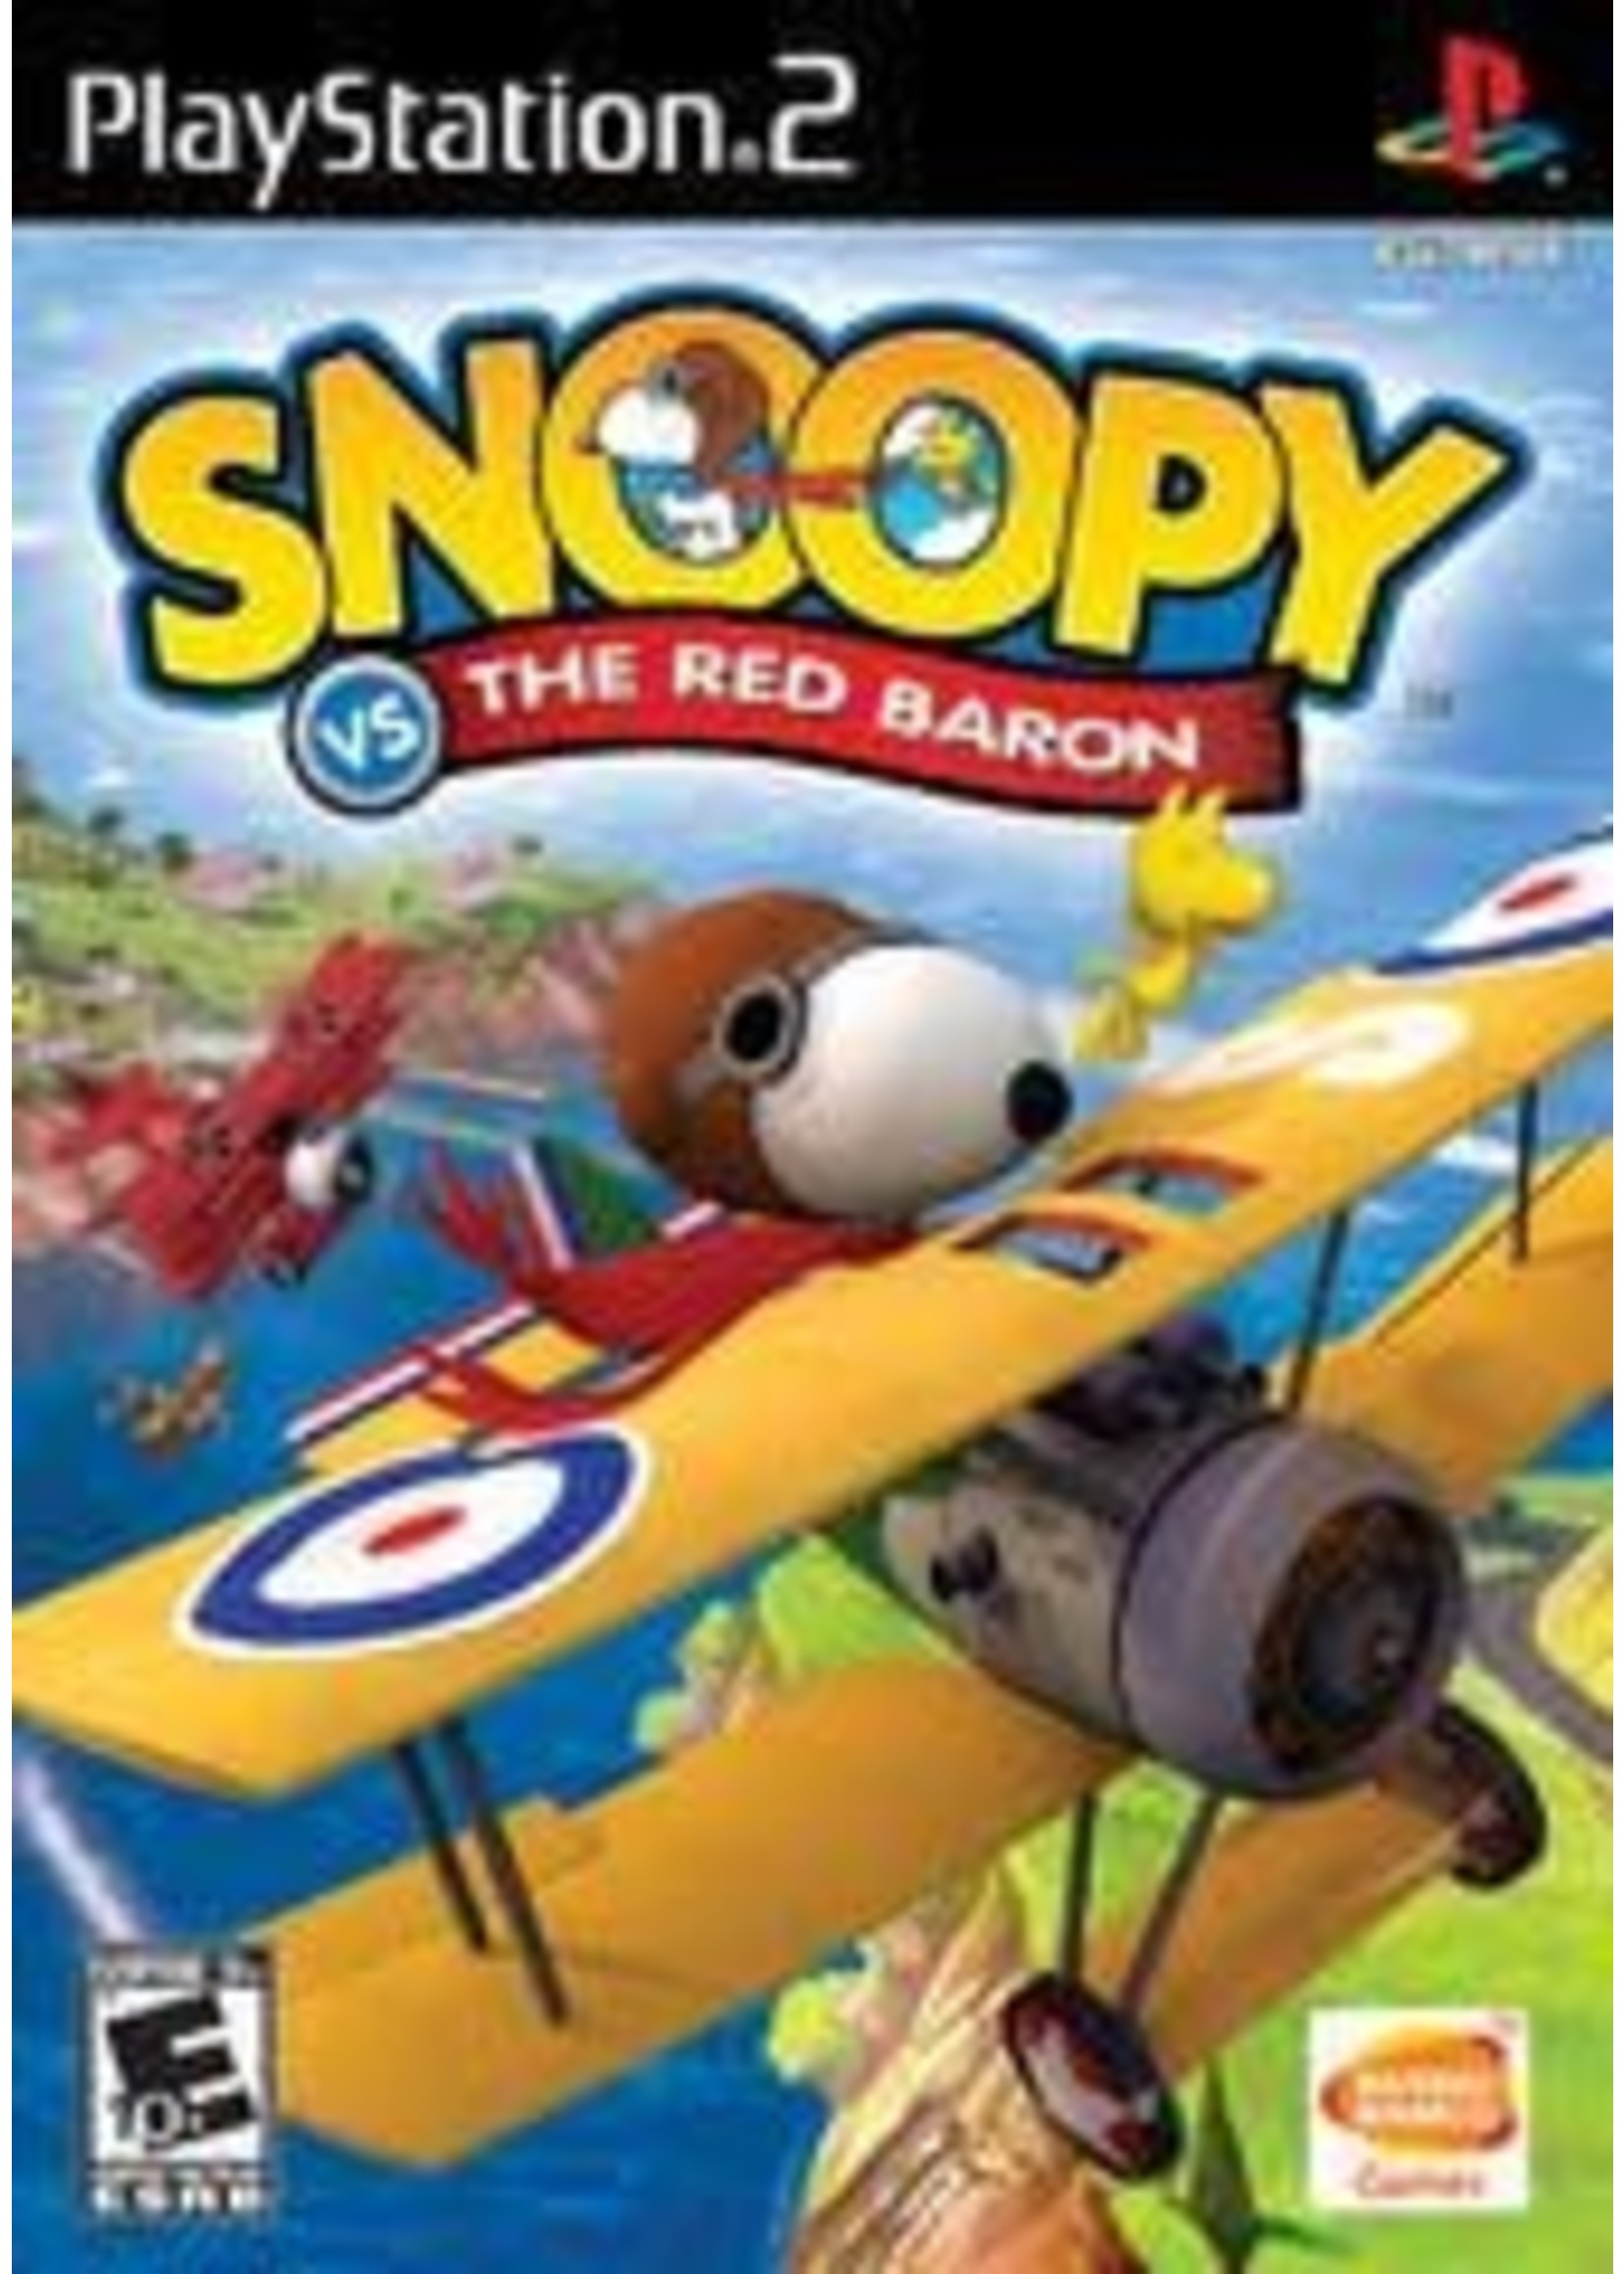 Snoopy Vs. The Red Baron Playstation 2